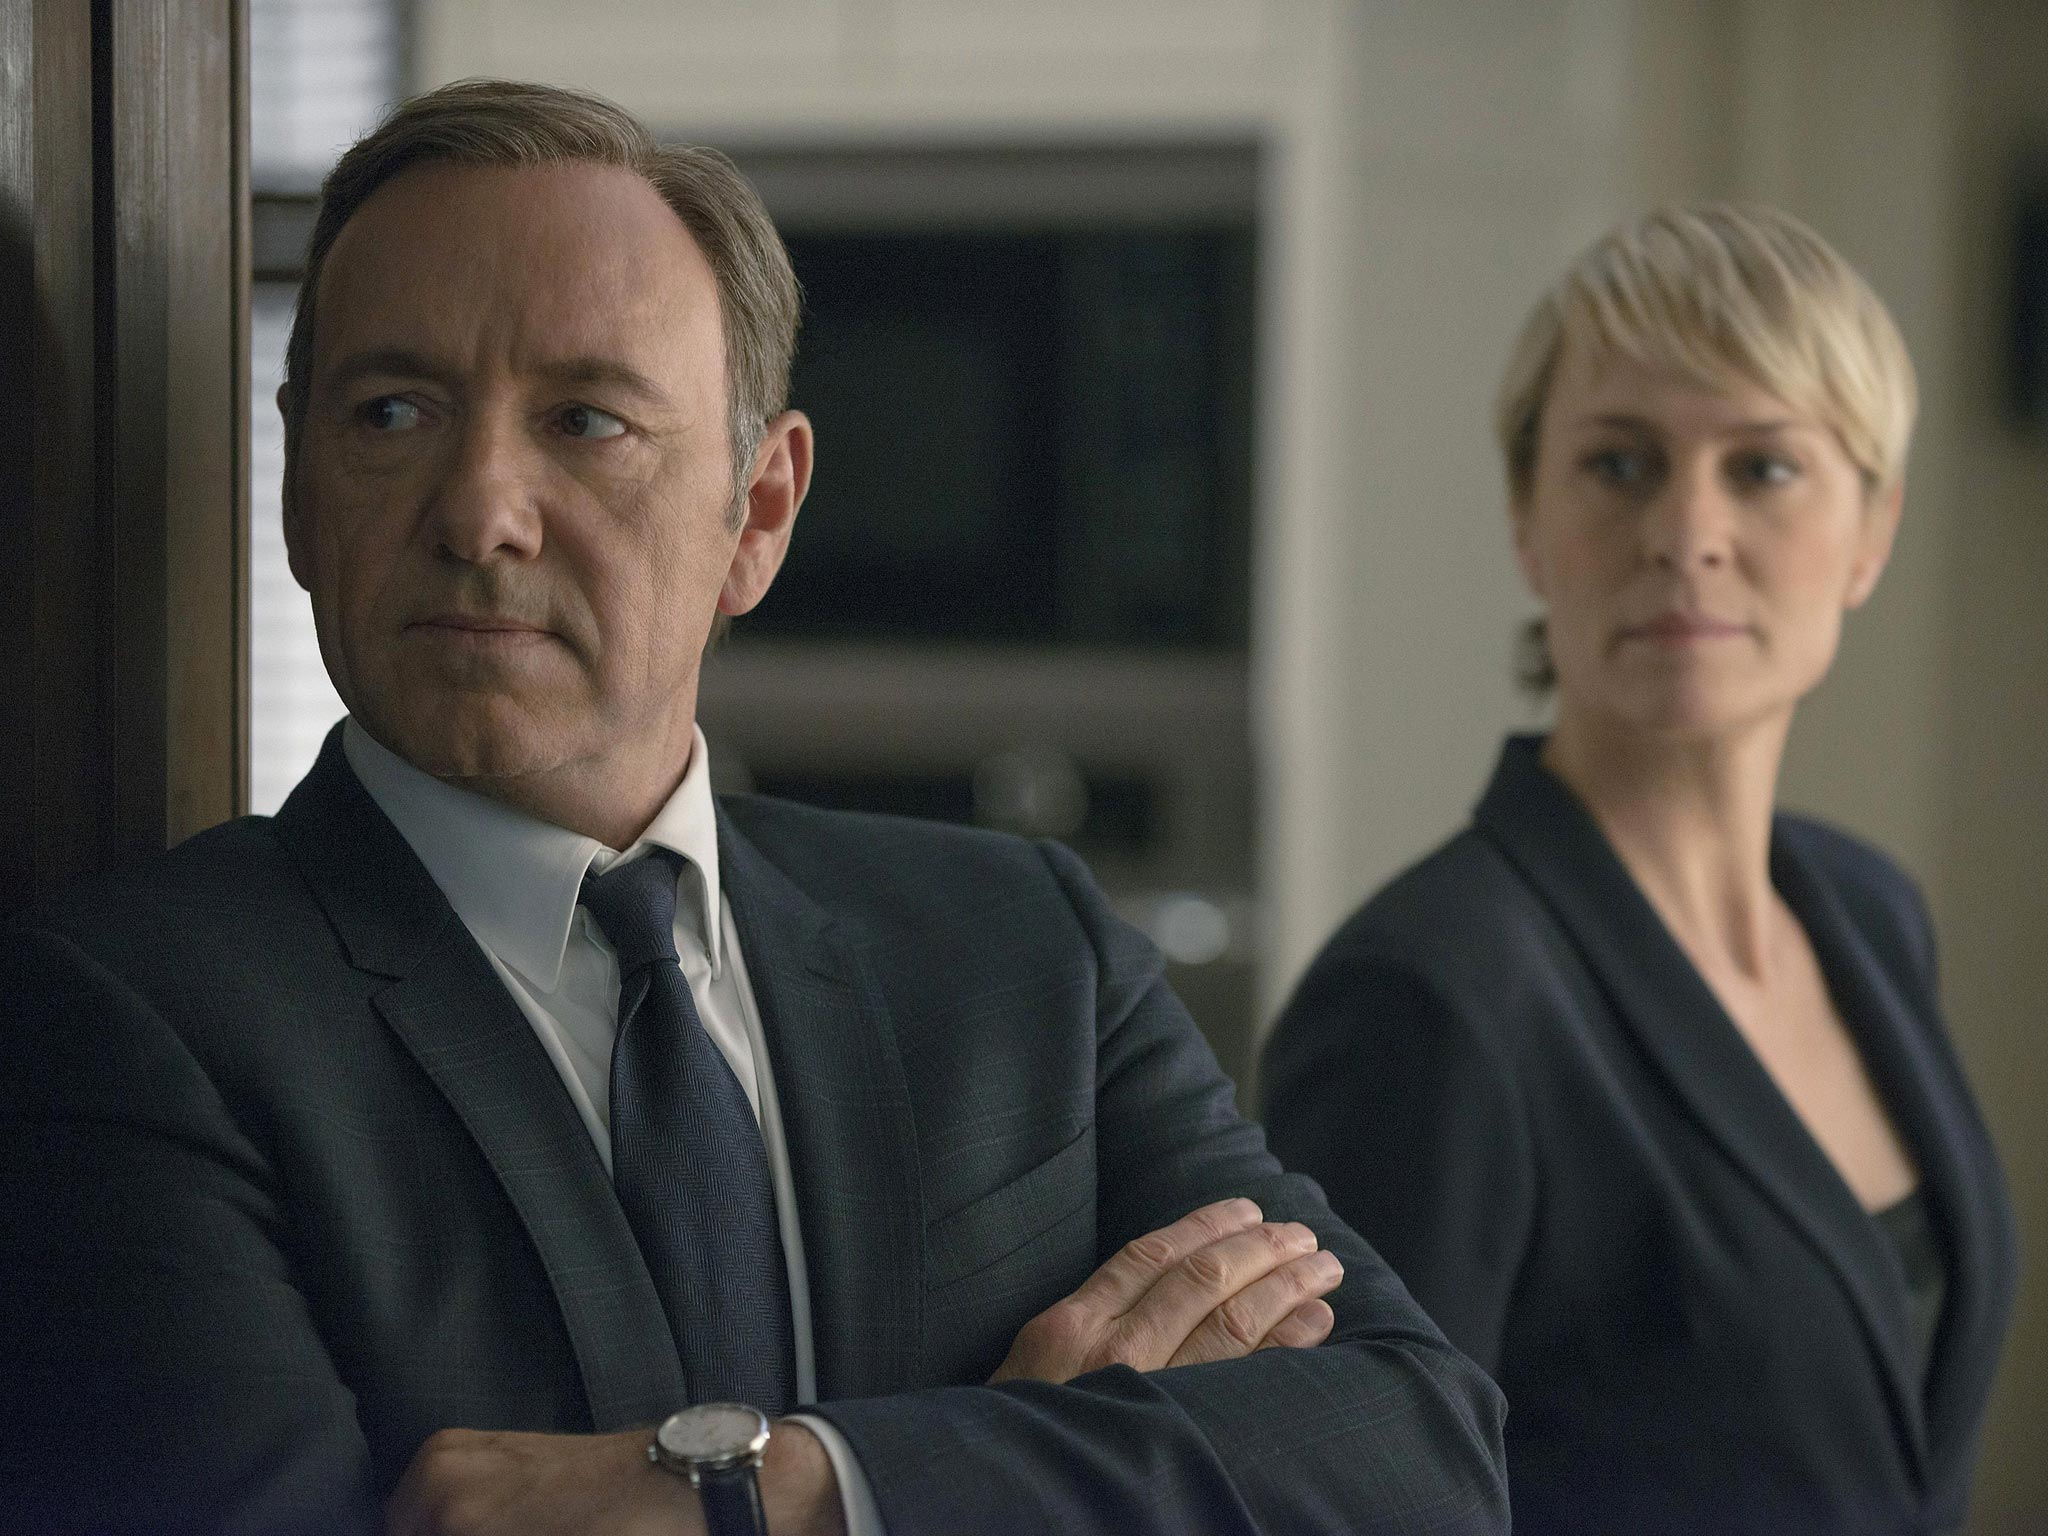 netflix confirms house of cards season 4 is officially happening